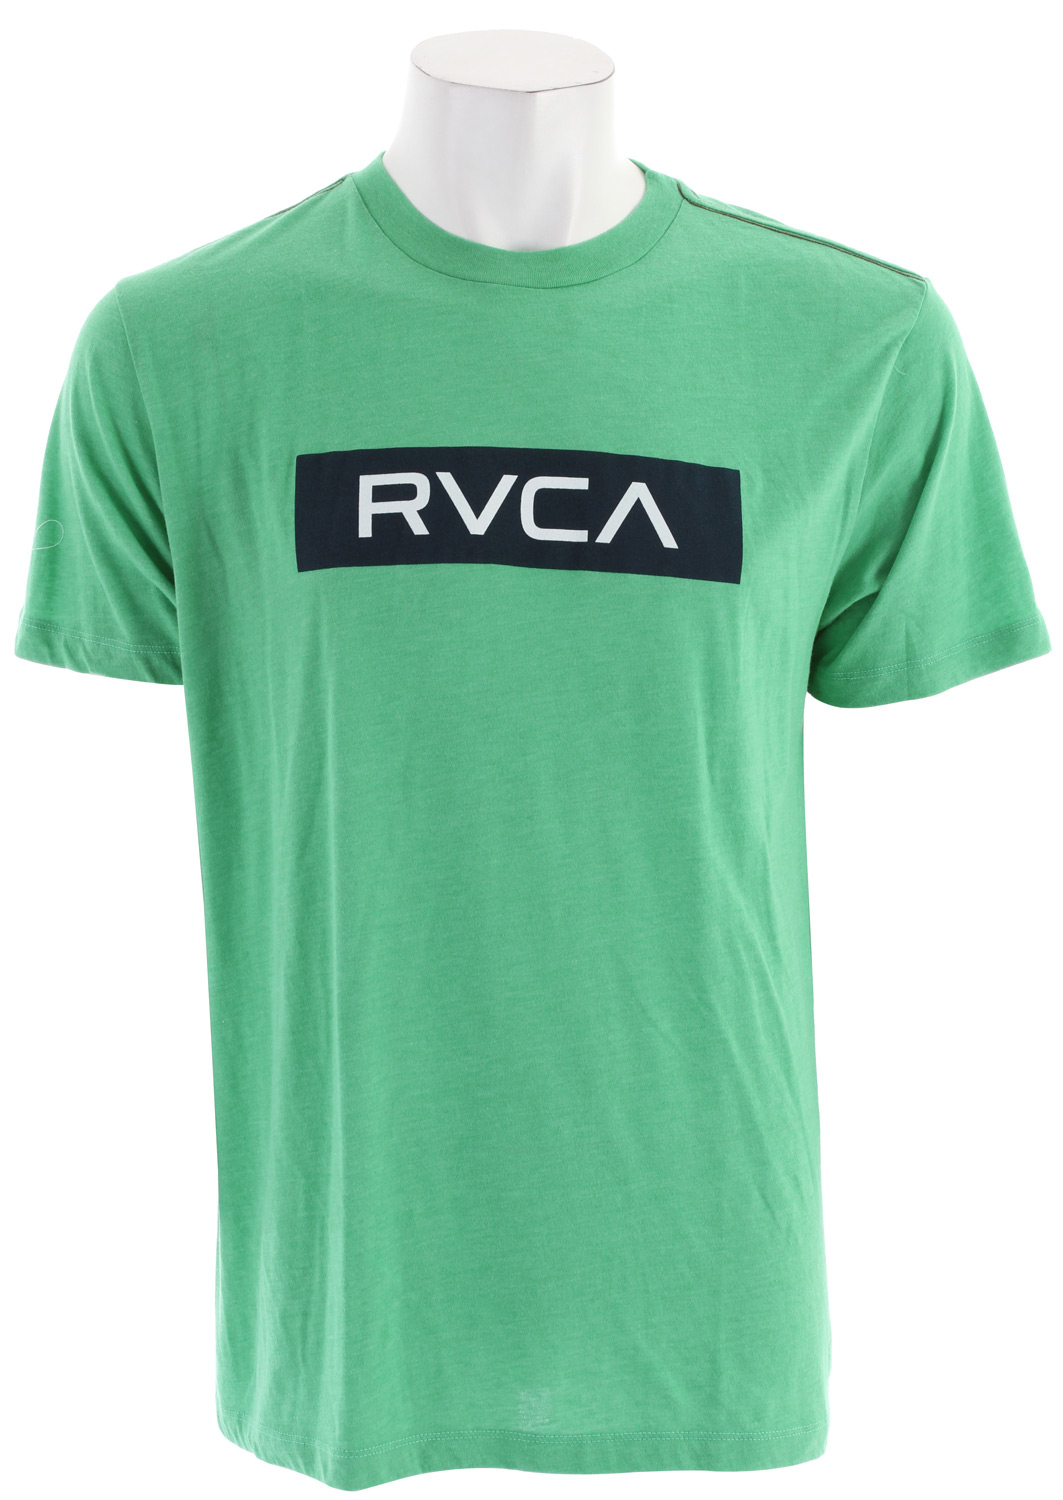 Key Features of The RVCA Options T-Shirt: Regular Fit Crew Neck Short Sleeve RVCA's short sleeve 100% combed cotton tee - $26.95